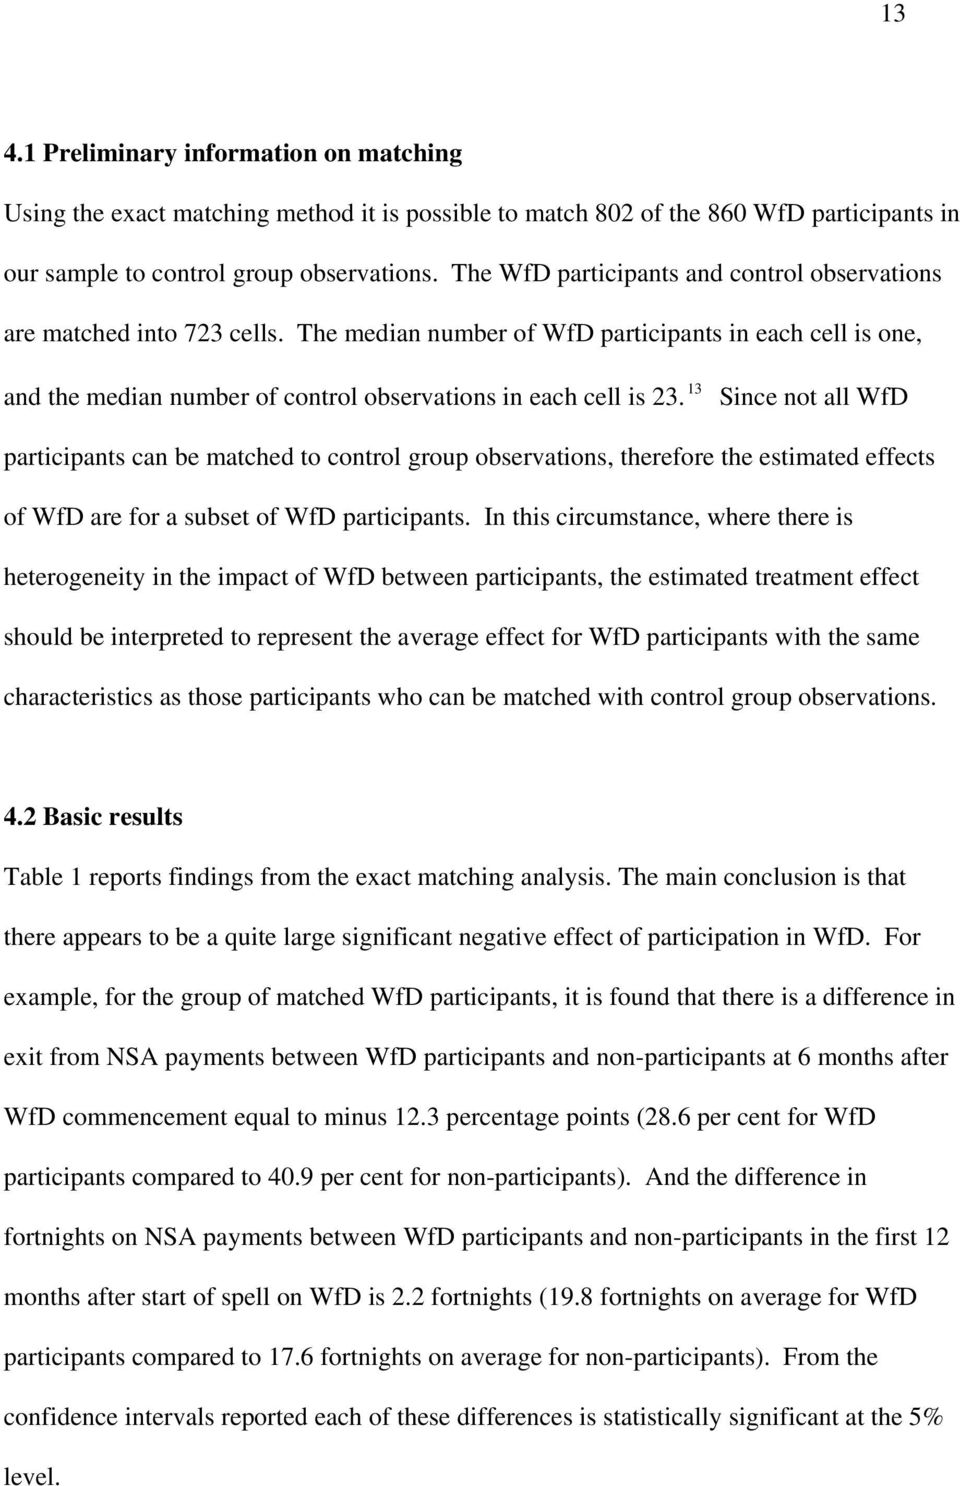 13 Since not all WfD participants can be matched to control group observations, therefore the estimated effects of WfD are for a subset of WfD participants.